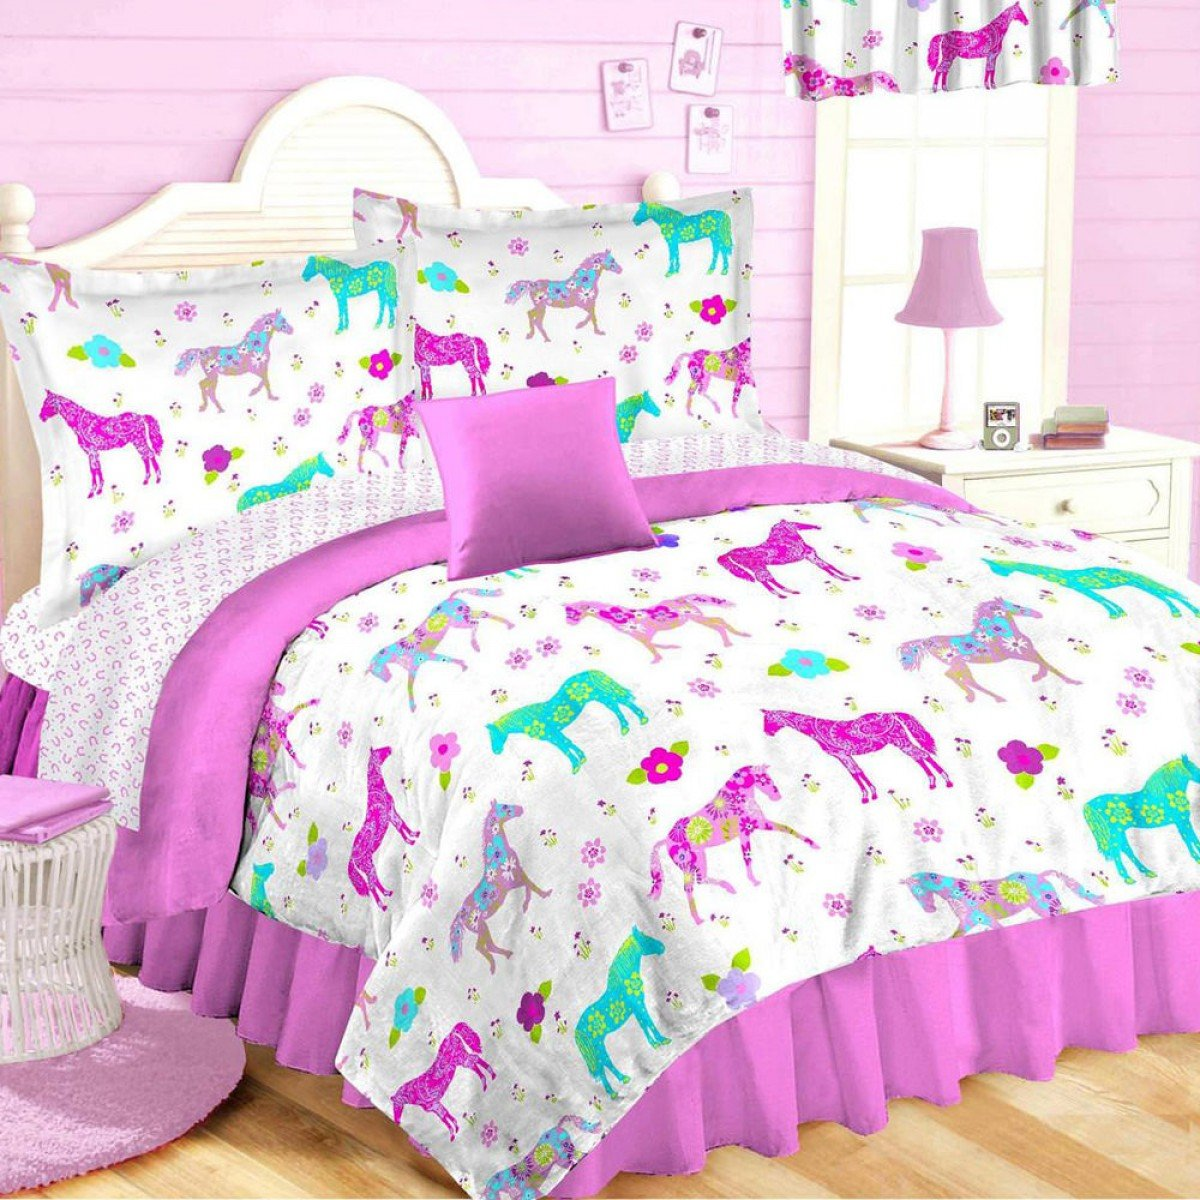 Buy 10pc Full Size Pink Pony Horse Room Ensemble Comforter Sheet Set Toss Pillow And Window Valance Girls Western Bed In A Bag In Cheap Price On Alibaba Com